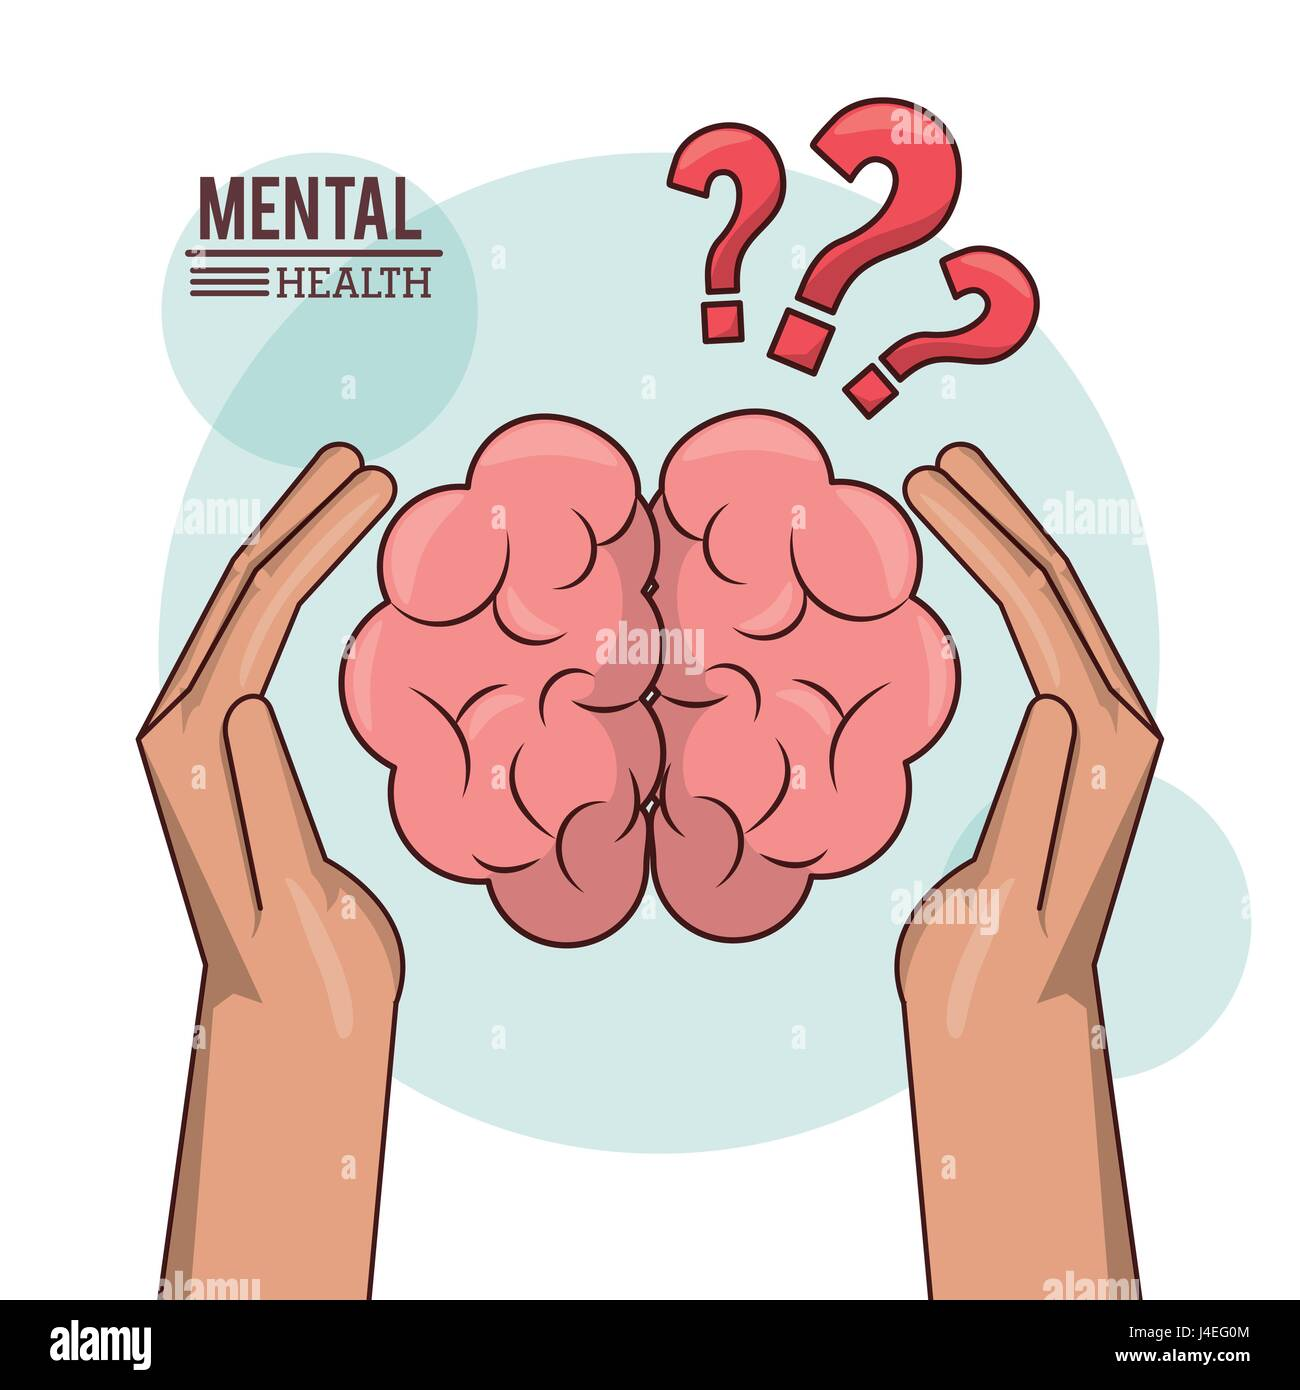 mental health, hand holding brain human with exclamation mark knowledge - Stock Image